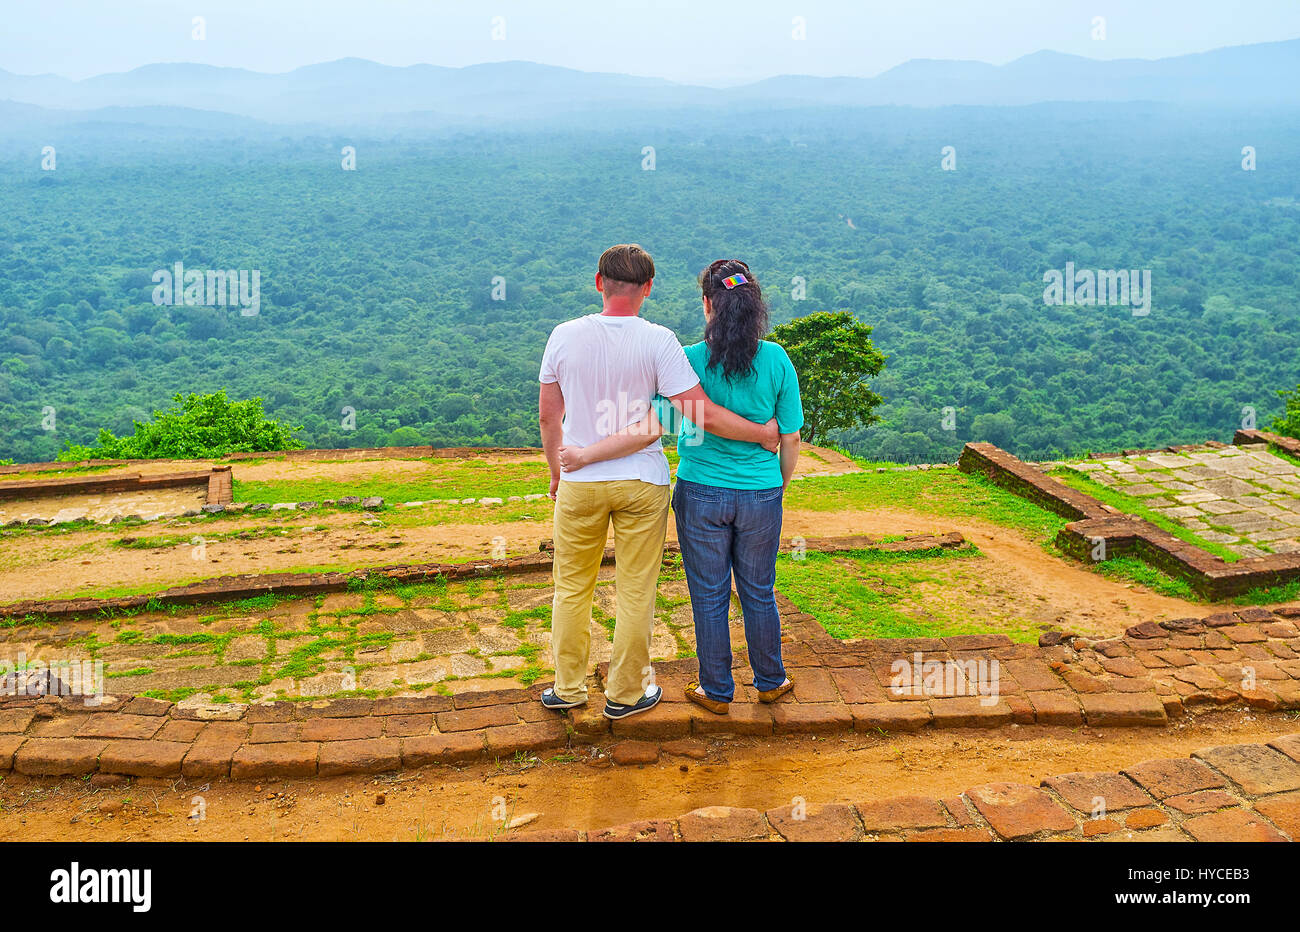 The couple enjoys the view from the top of Sigiriya Rock, hugging among the ruins of ancient upper palace, Sri Lanka. - Stock Image